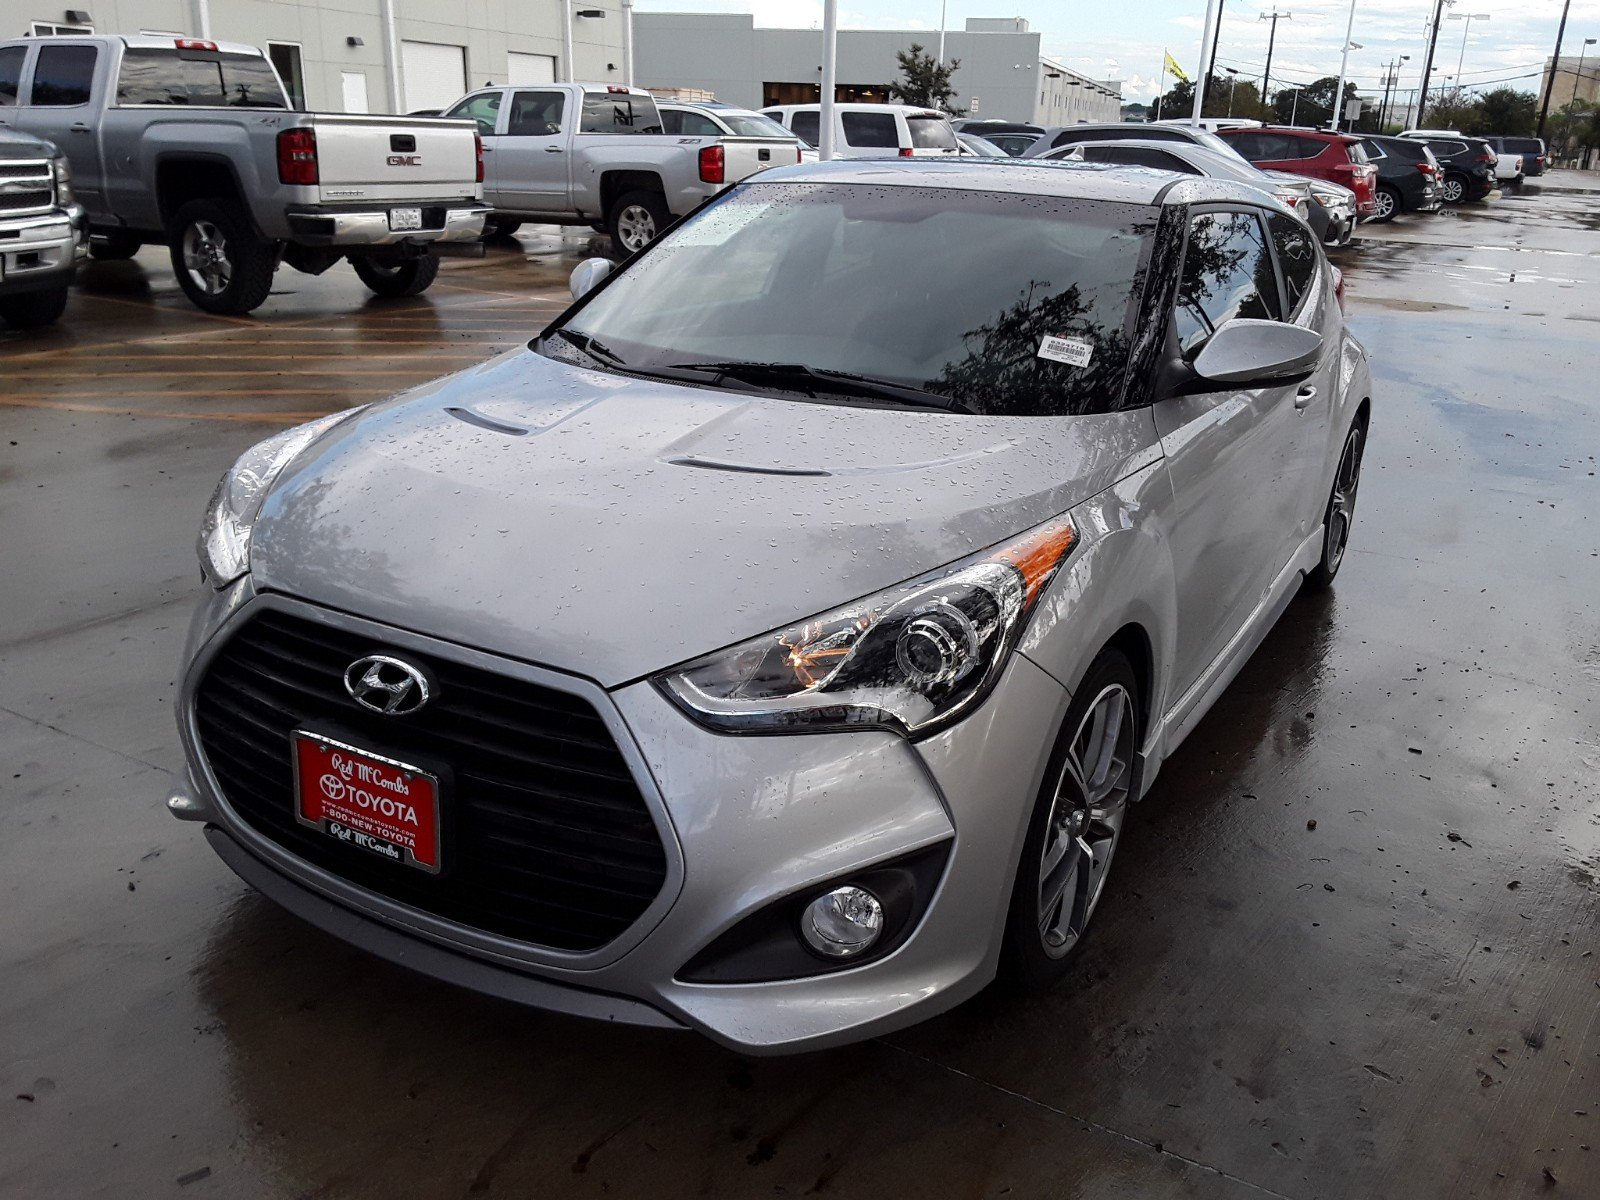 Pre-Owned 2015 Hyundai Veloster Turbo 3dr Car in San Antonio ...